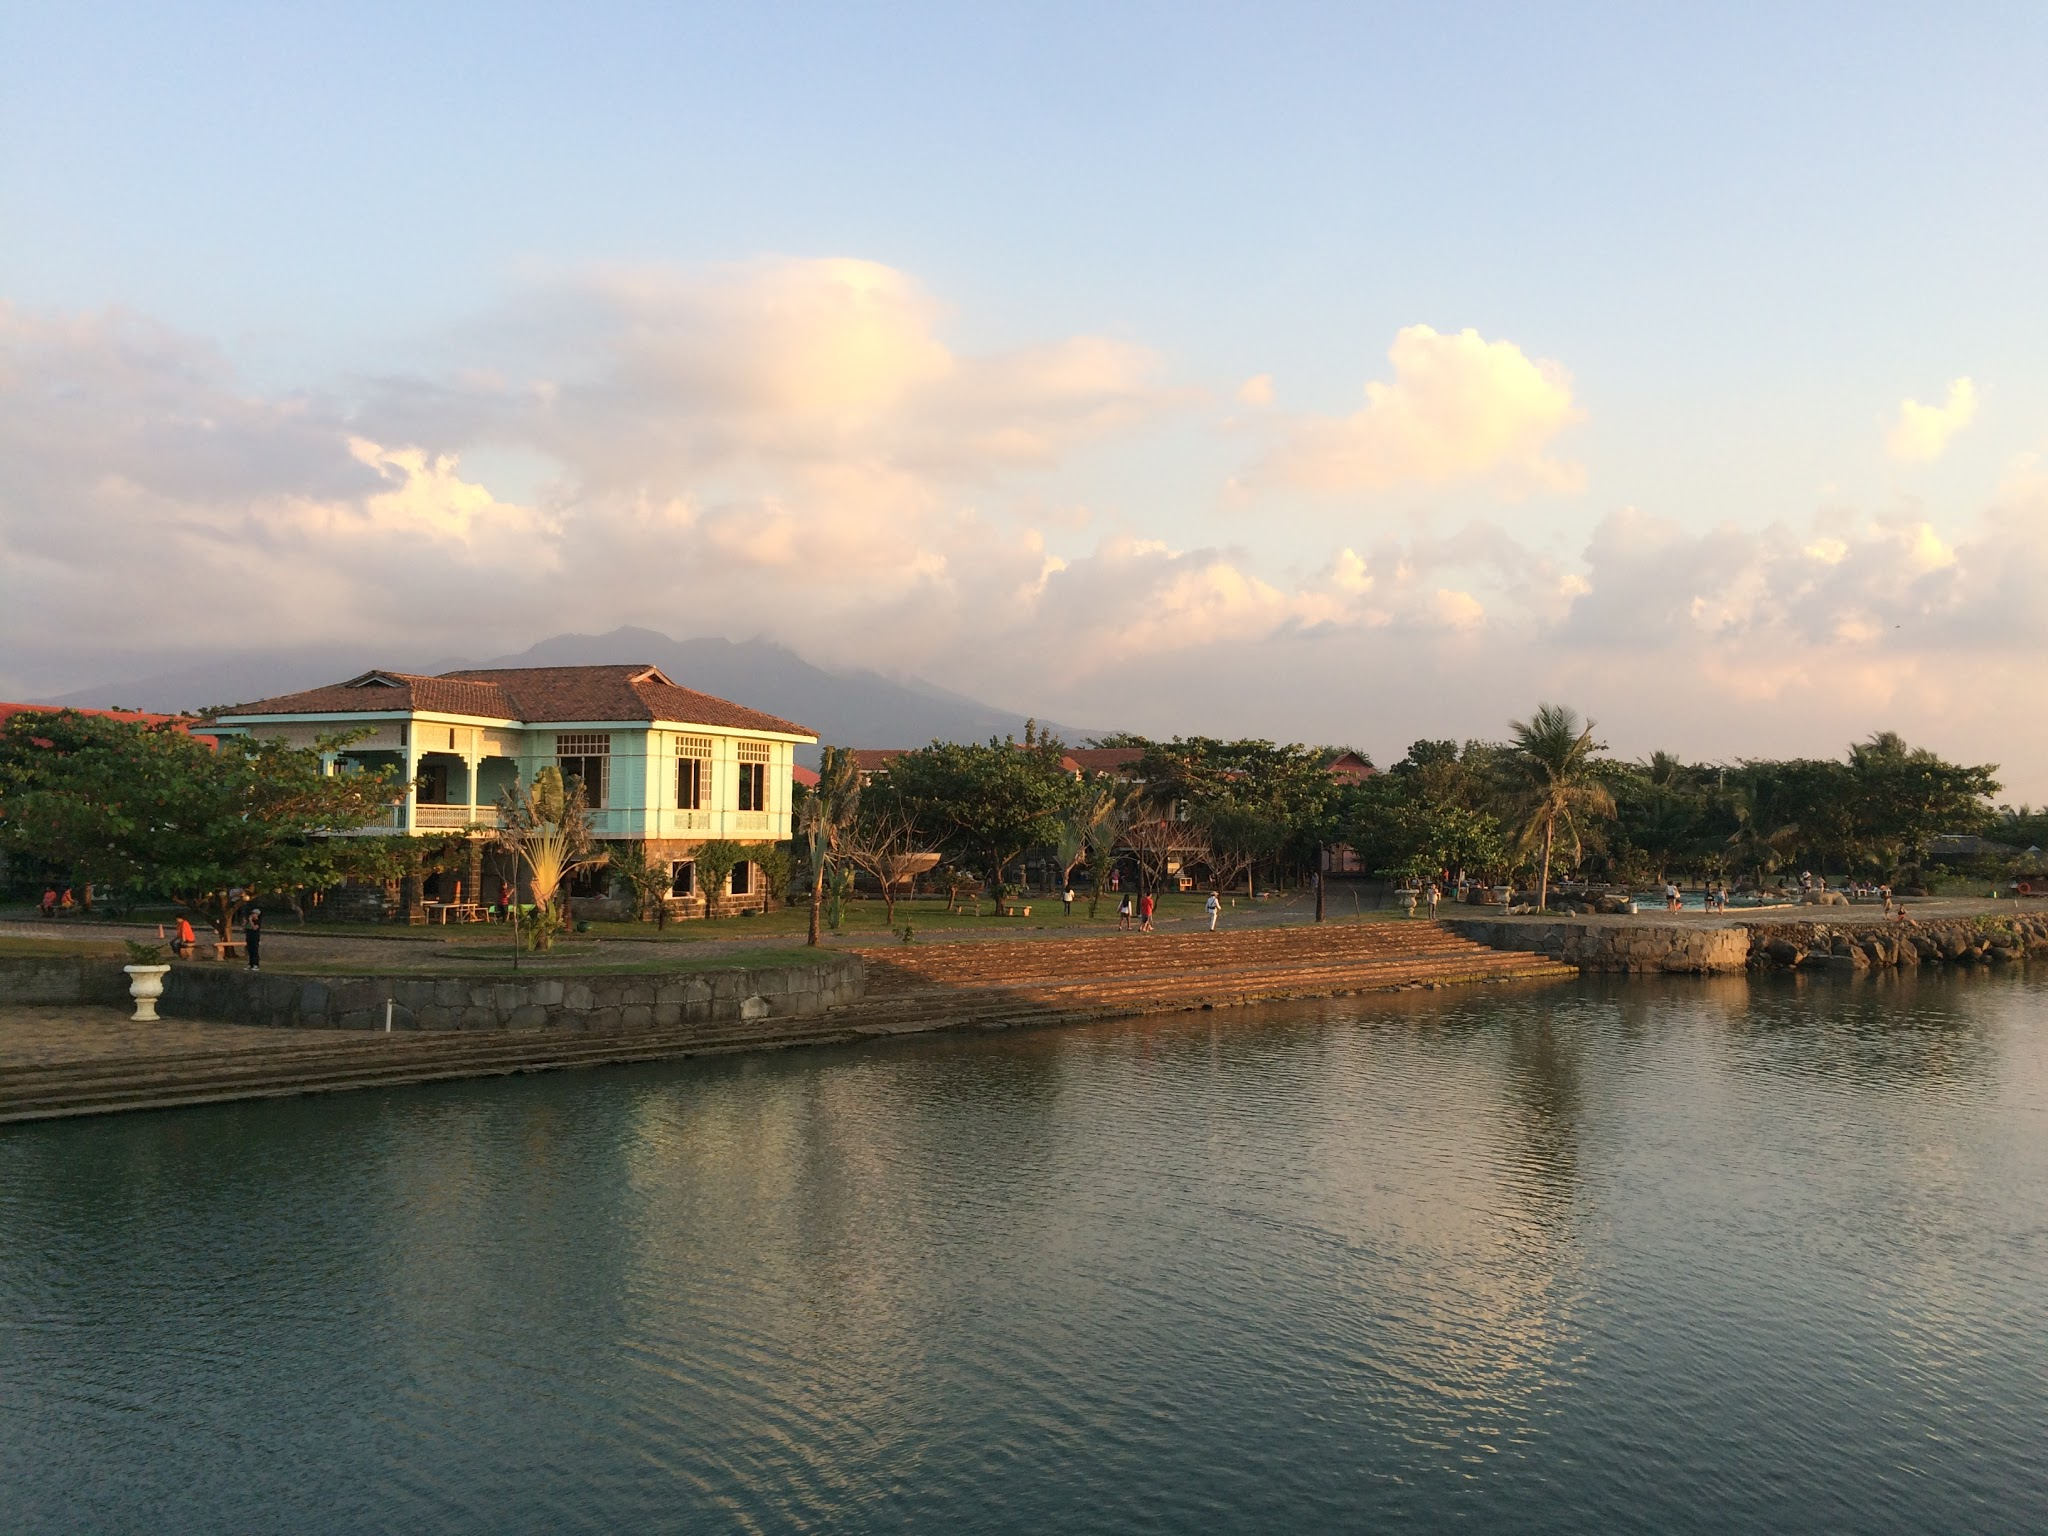 Scenes of Las Casas along the water. Quite the escape, right?